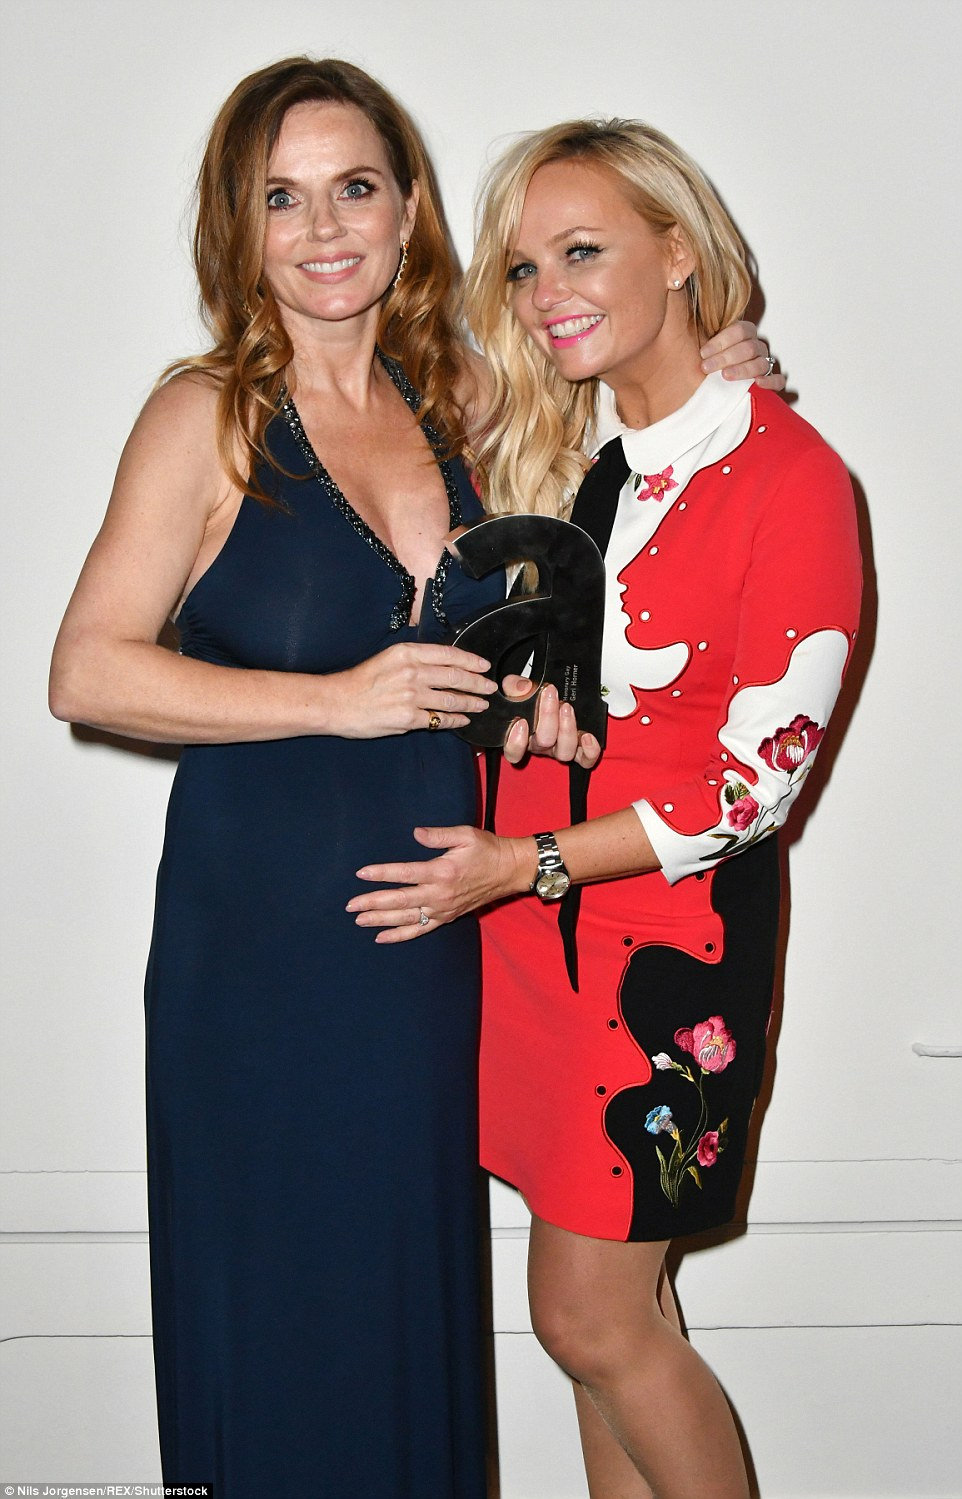 Smiles all around: Emma could not look happier for her friend as she held on tight to her baby bump